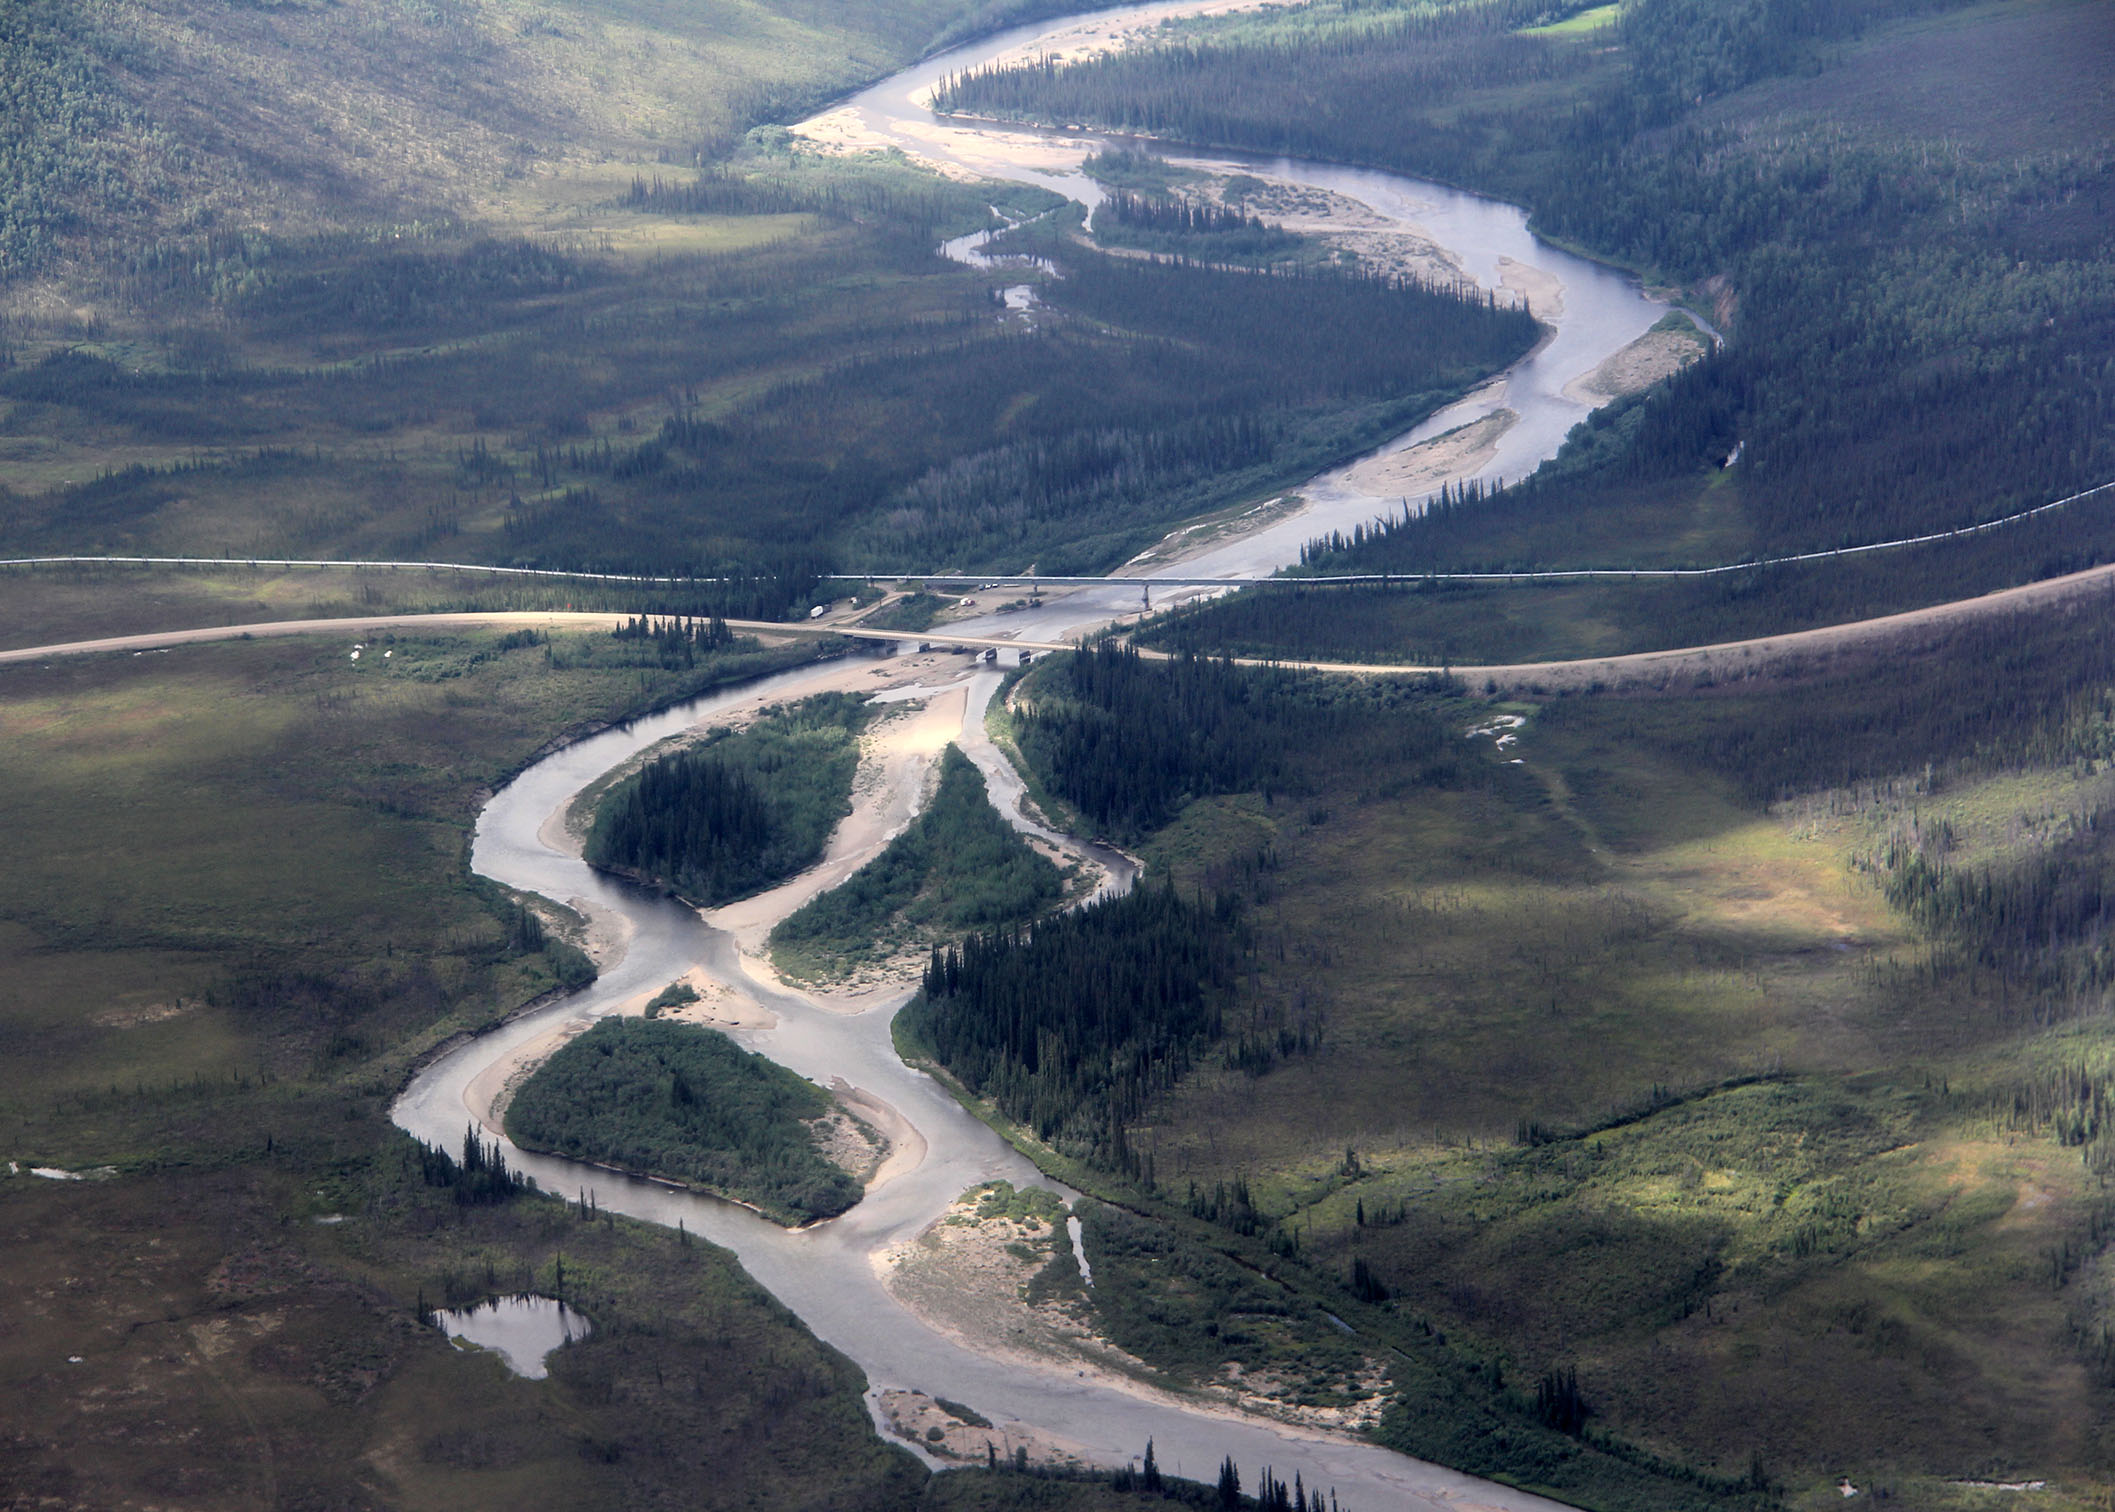 The intersection of the Dalton Highway, The Alaskan Pipeline and the Yukon River.